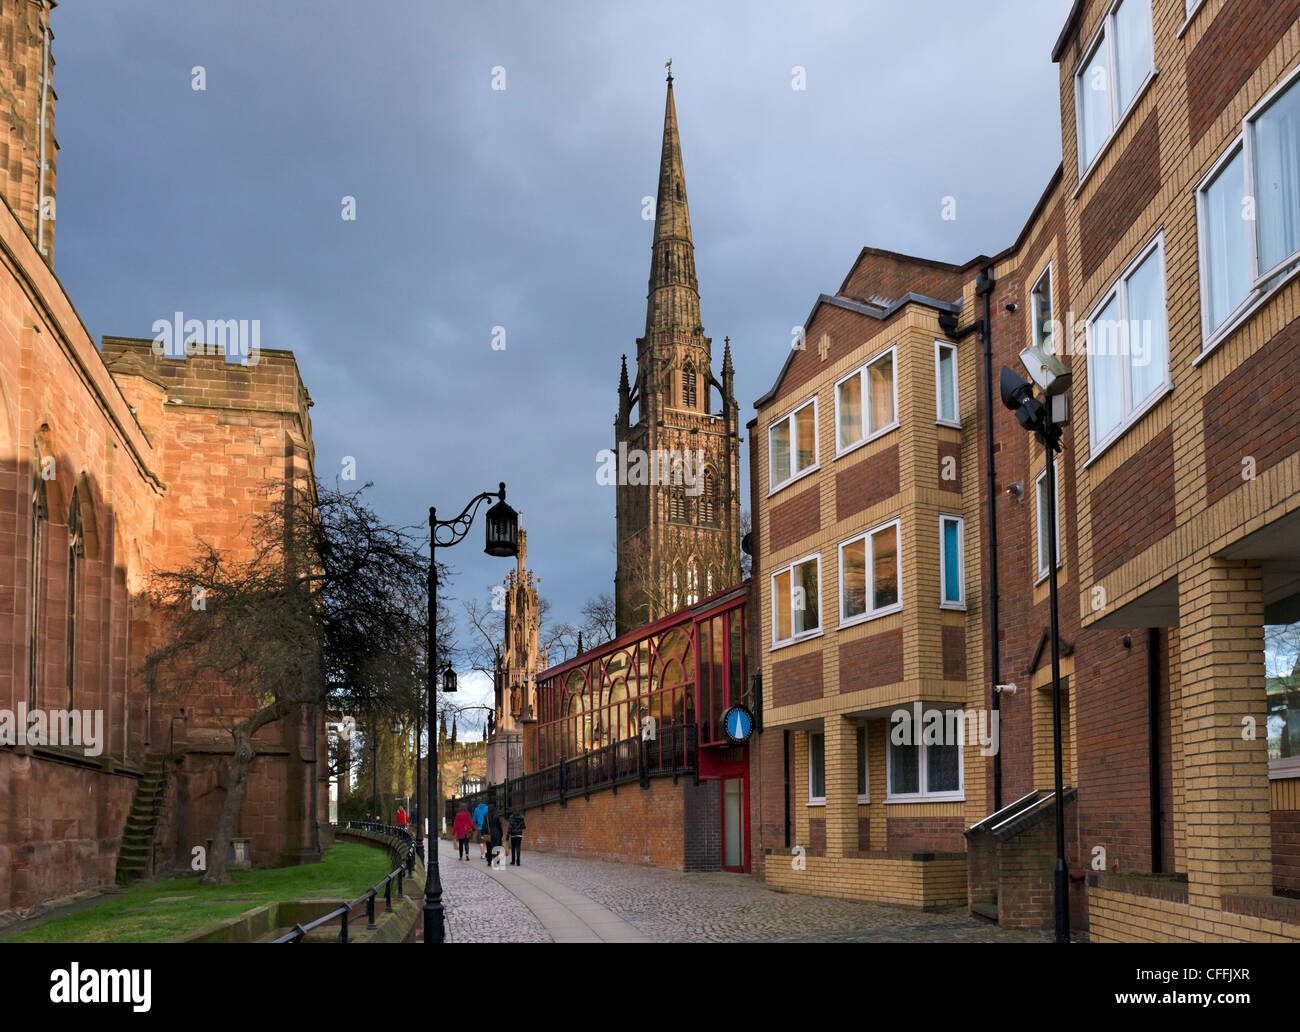 The spire of the old cathedral in the late afternoon with Holy Trinity Church to the left, Coventry, West Midlands, - Stock Image